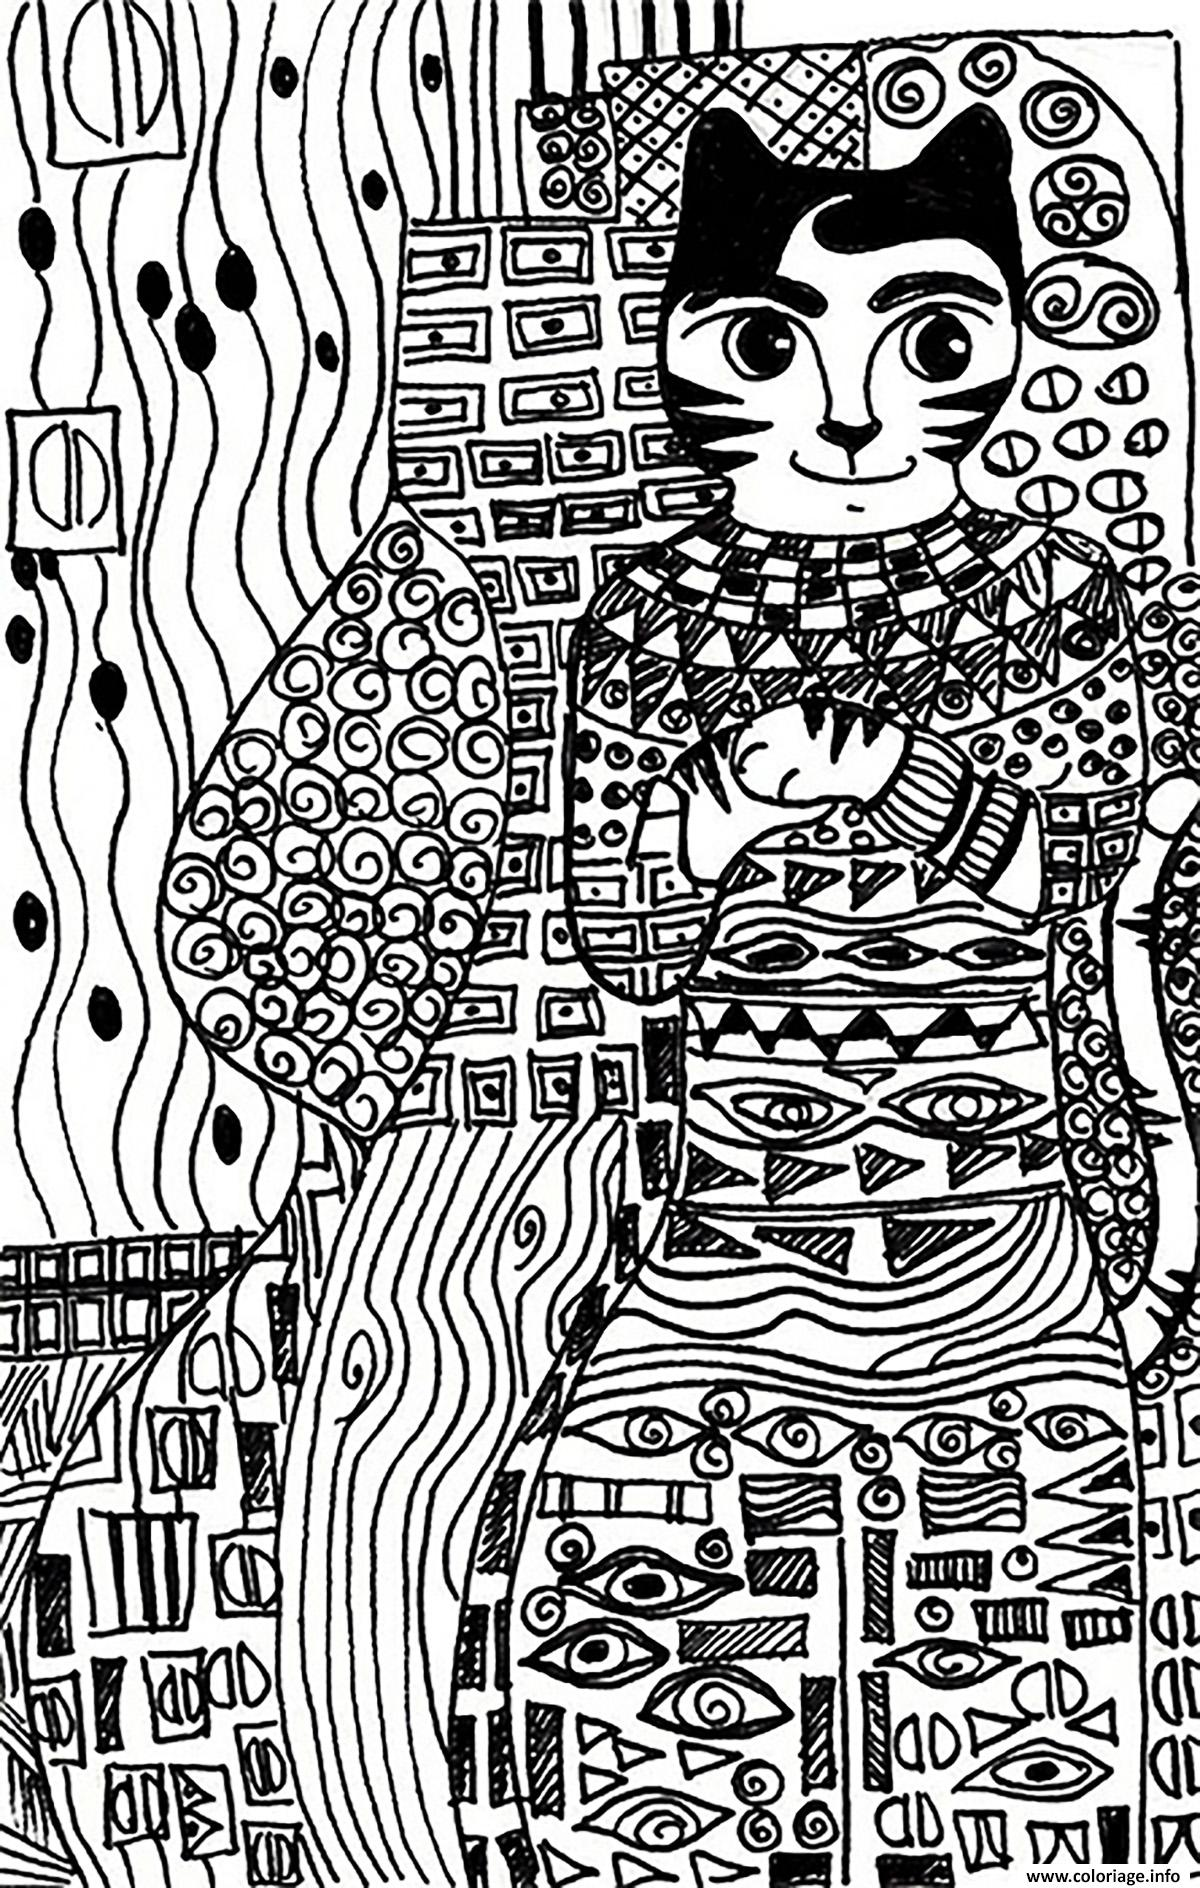 Impressionnant Dessins à Colorier Kitty